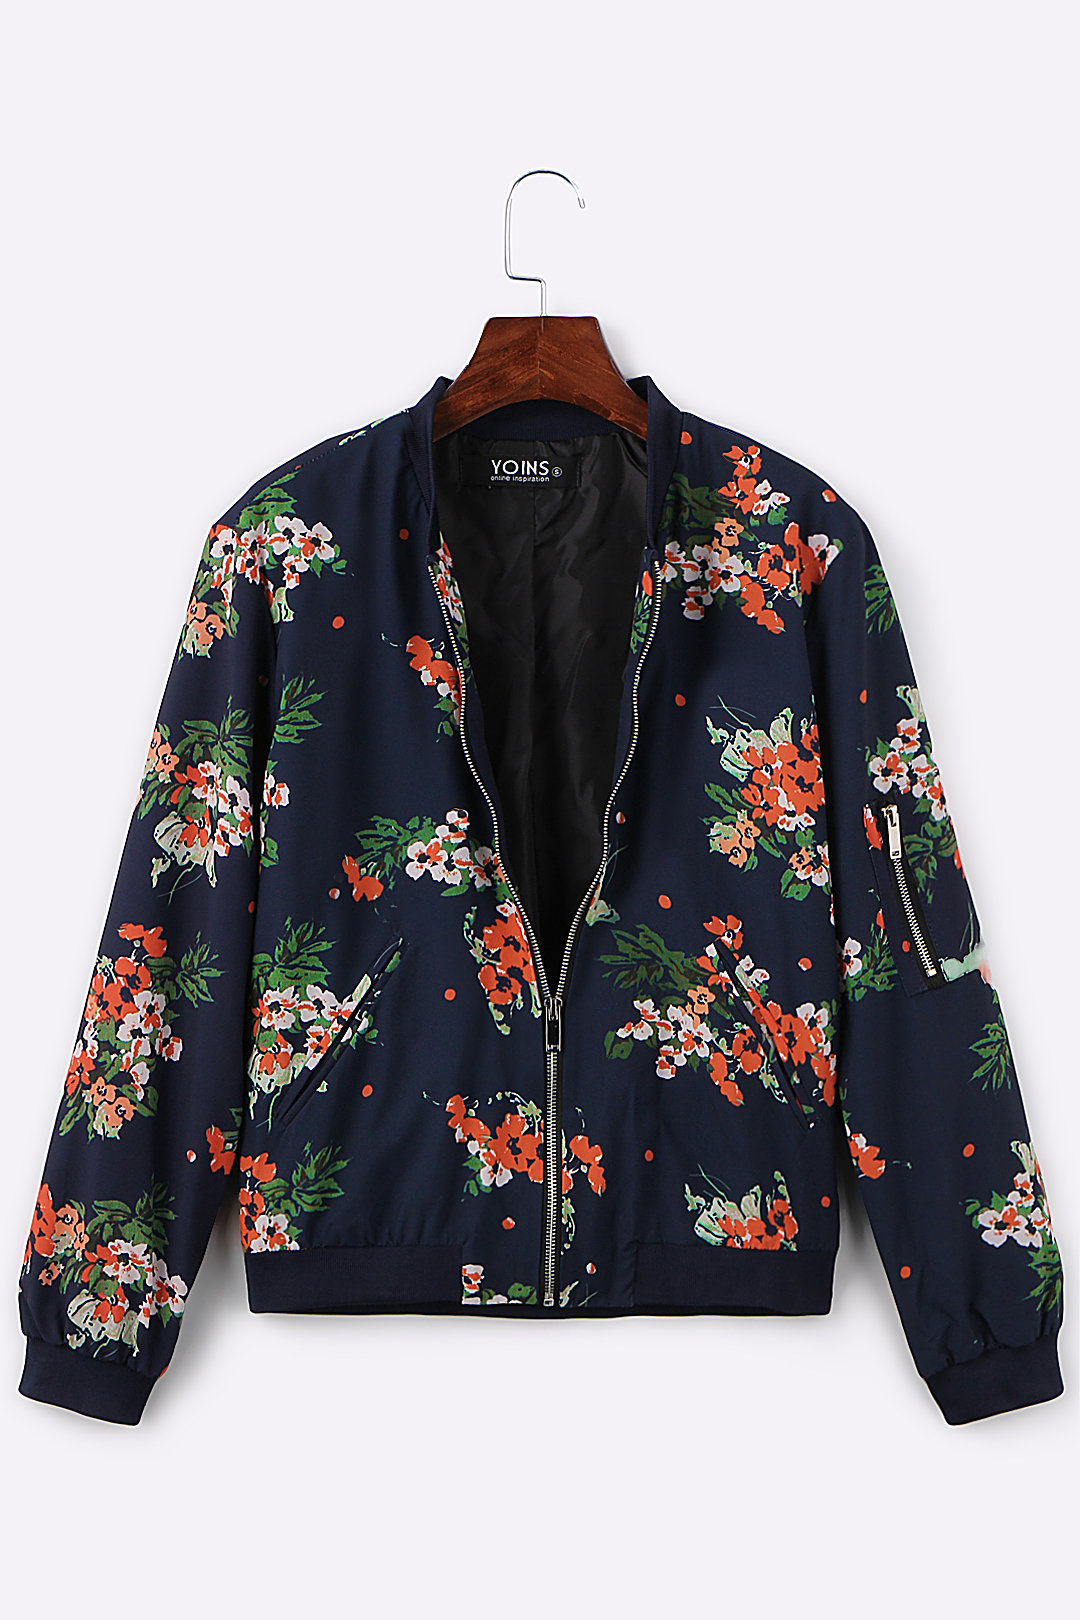 Random Floral Print Quilted Jacket with Side Pockets fashion random floral pattern pockets design jacket